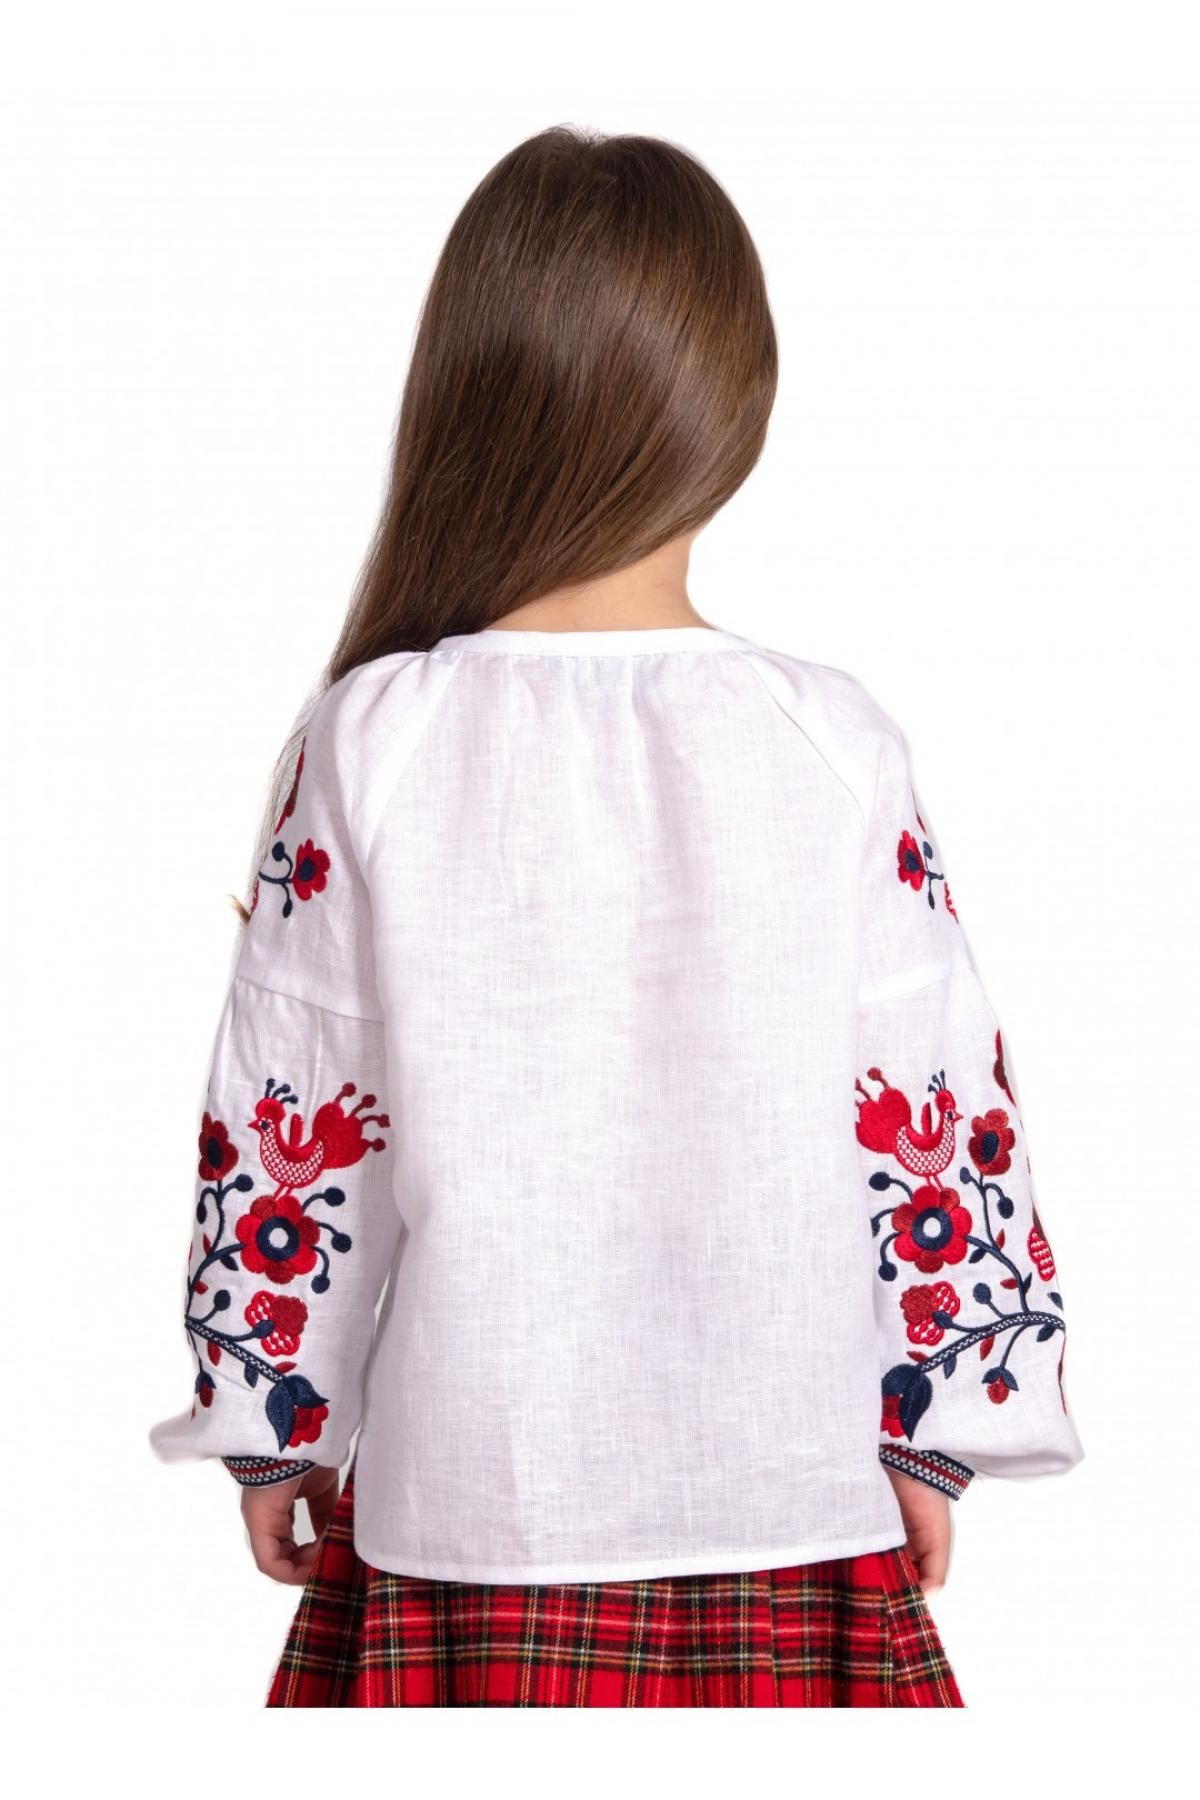 Embroidery for a girl white with red embroidery. Photo №5. | Narodnyi dim Ukraine